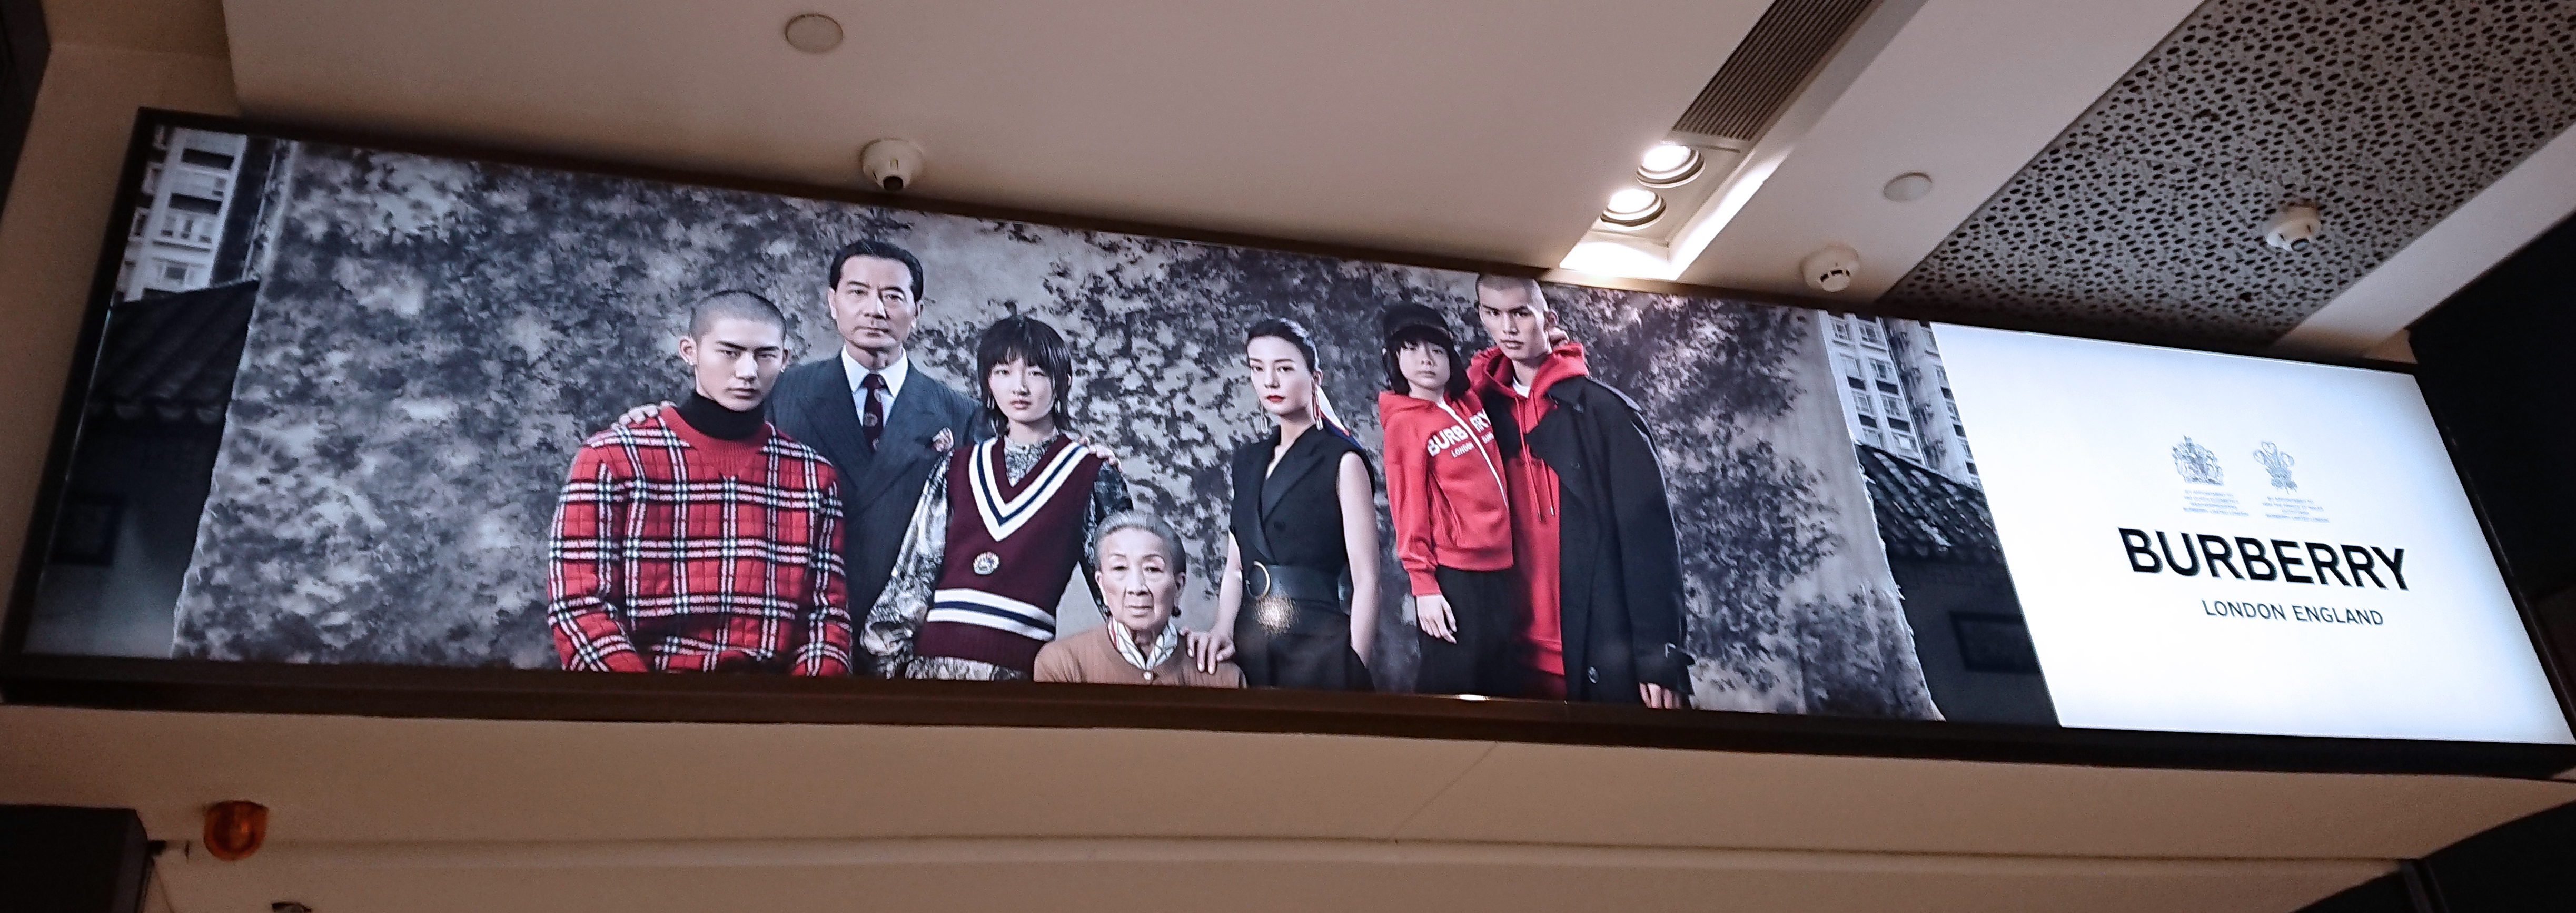 burberry ad @ ion orchard